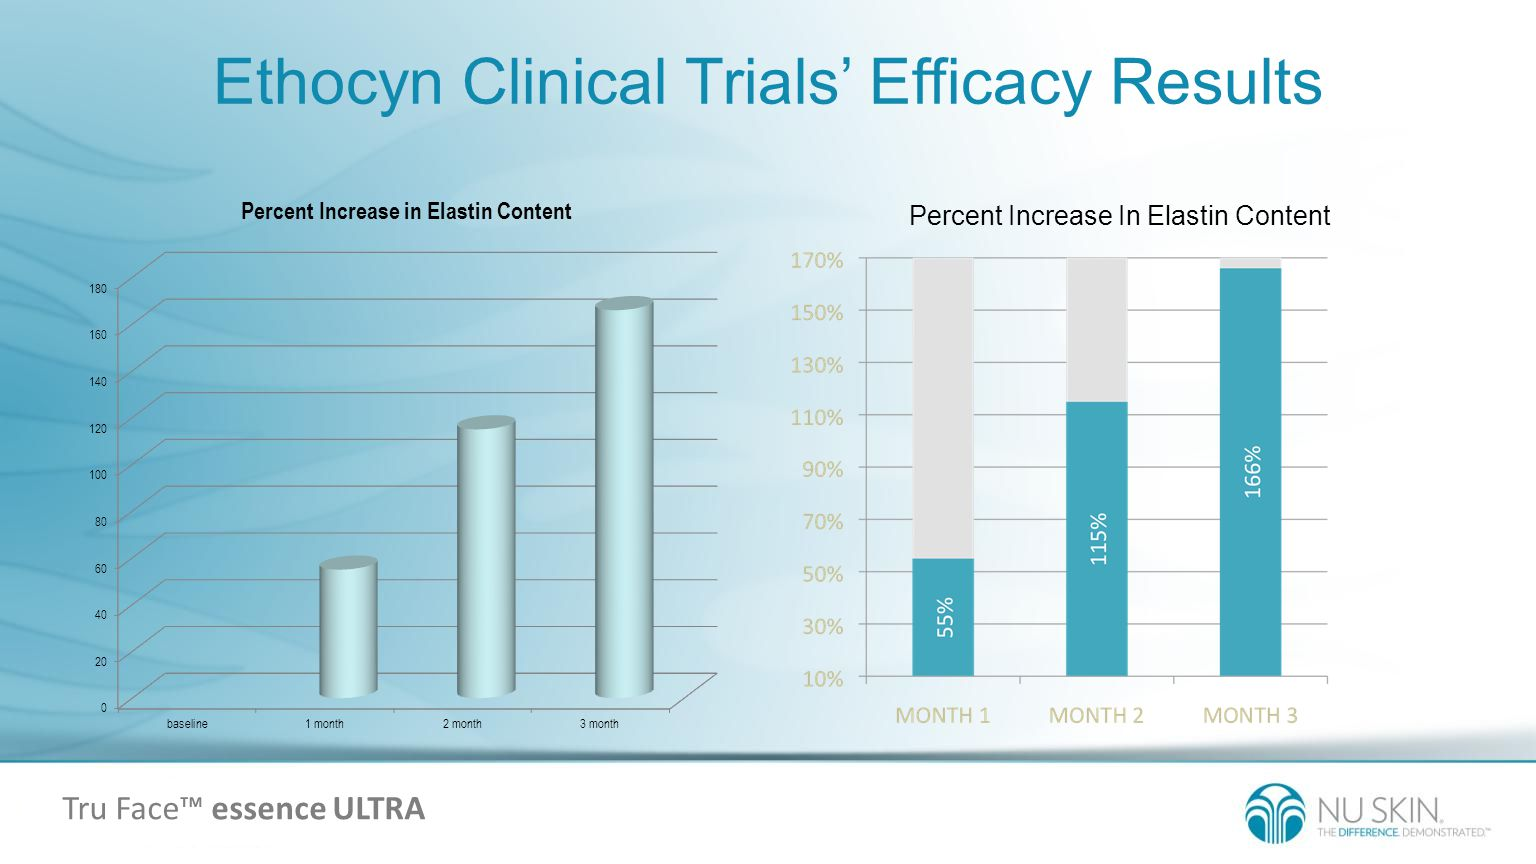 Ethocyn Clinical Trials Efficacy Results Percent Increase In Elastin Content Tru Face essence ULTRA